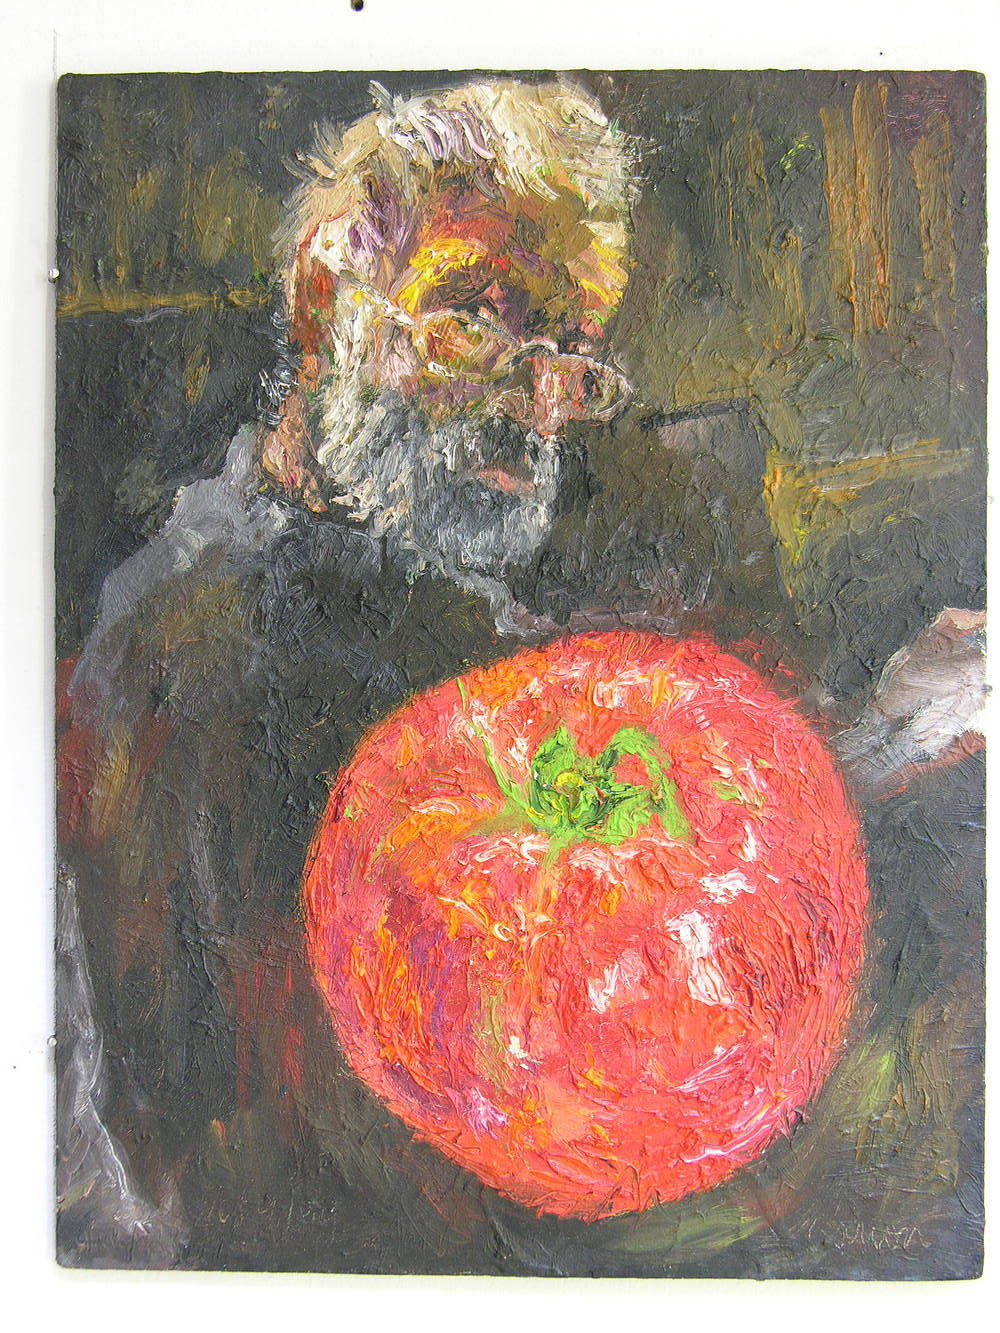 Night Reflection 2 (with Tomato) by Peter Barron